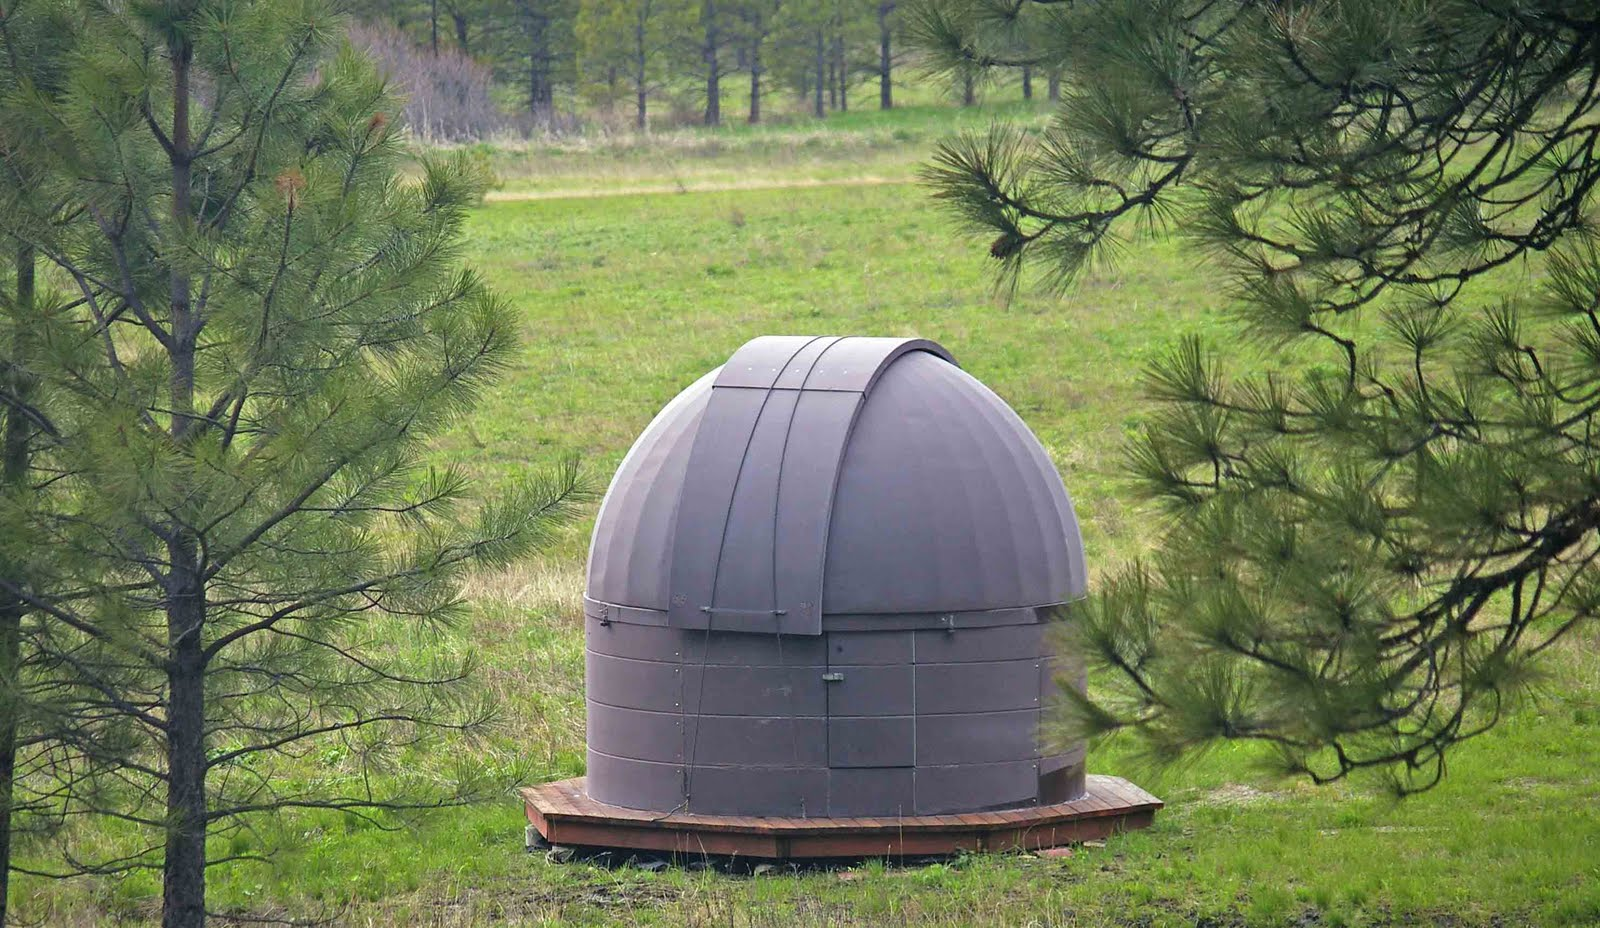 astronomy dome tents - photo #40